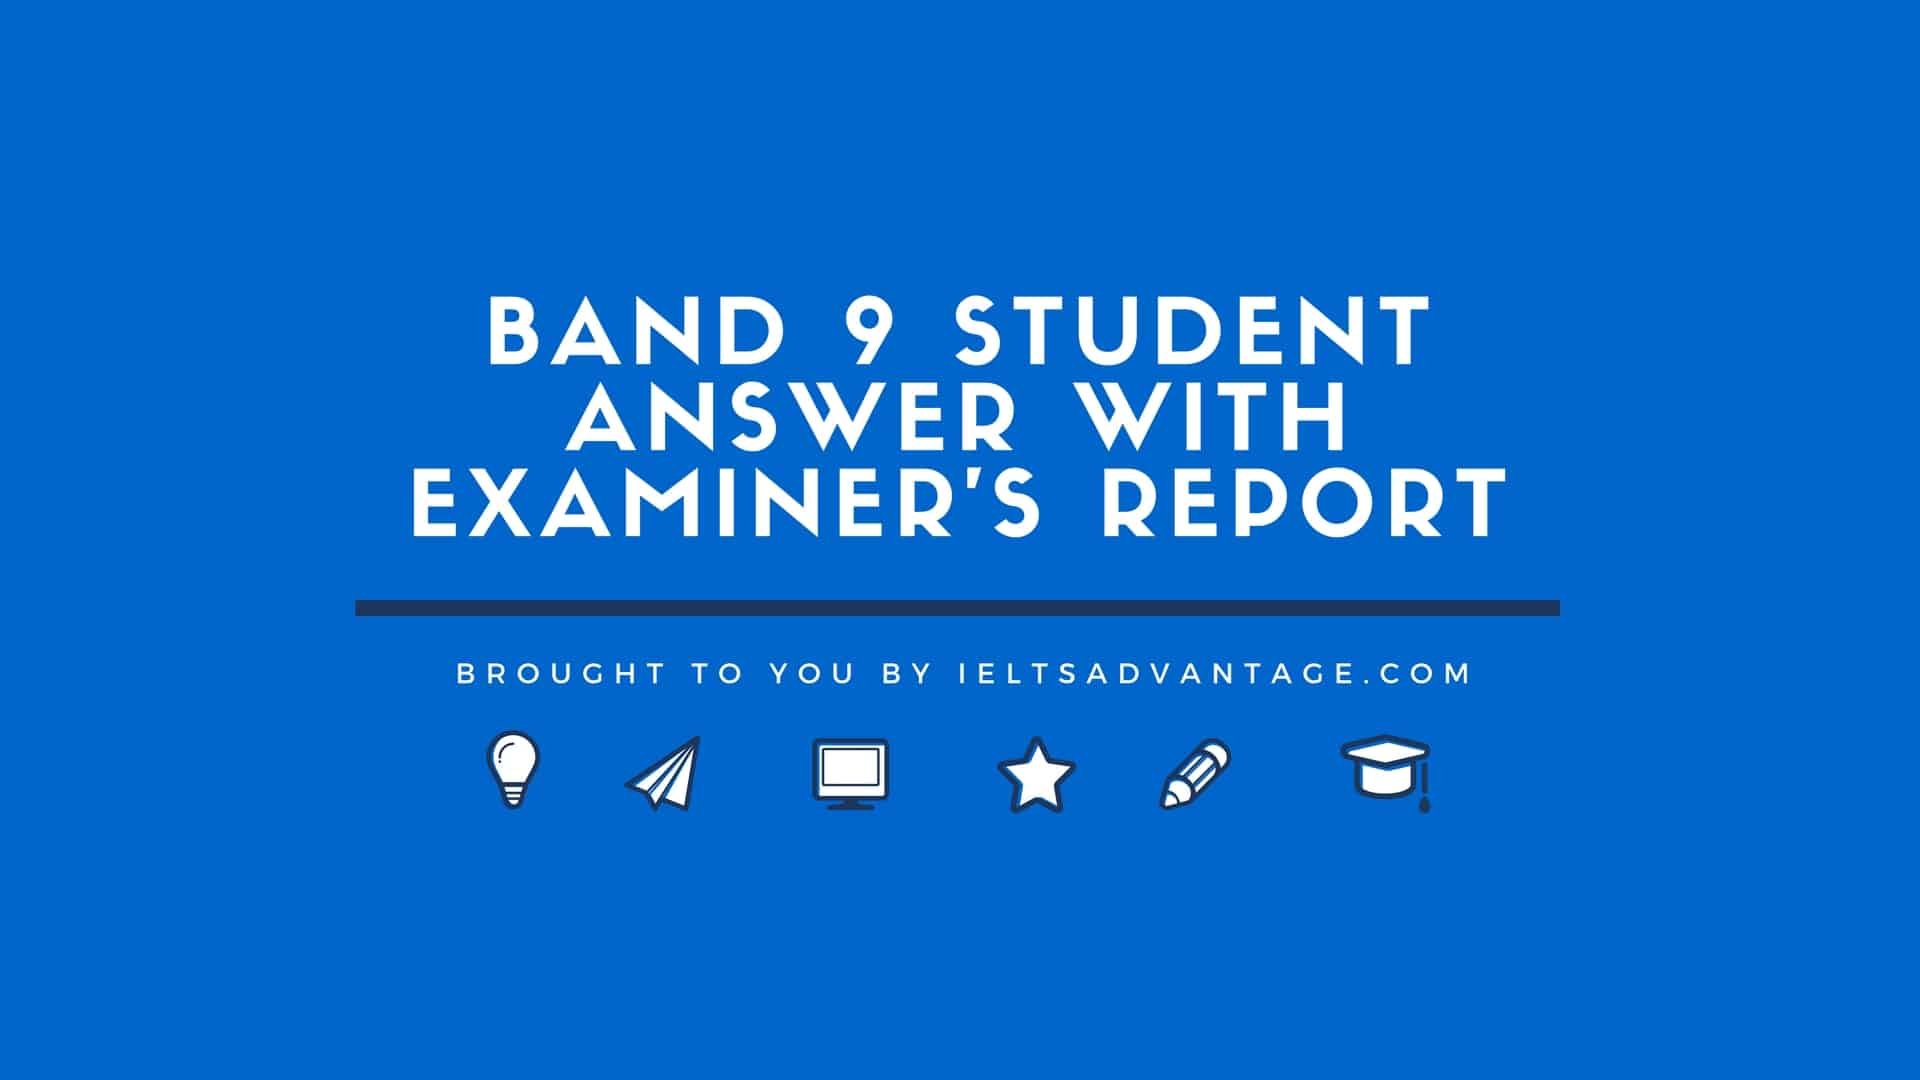 251 Band 9 Student Answer With Examiner's Report